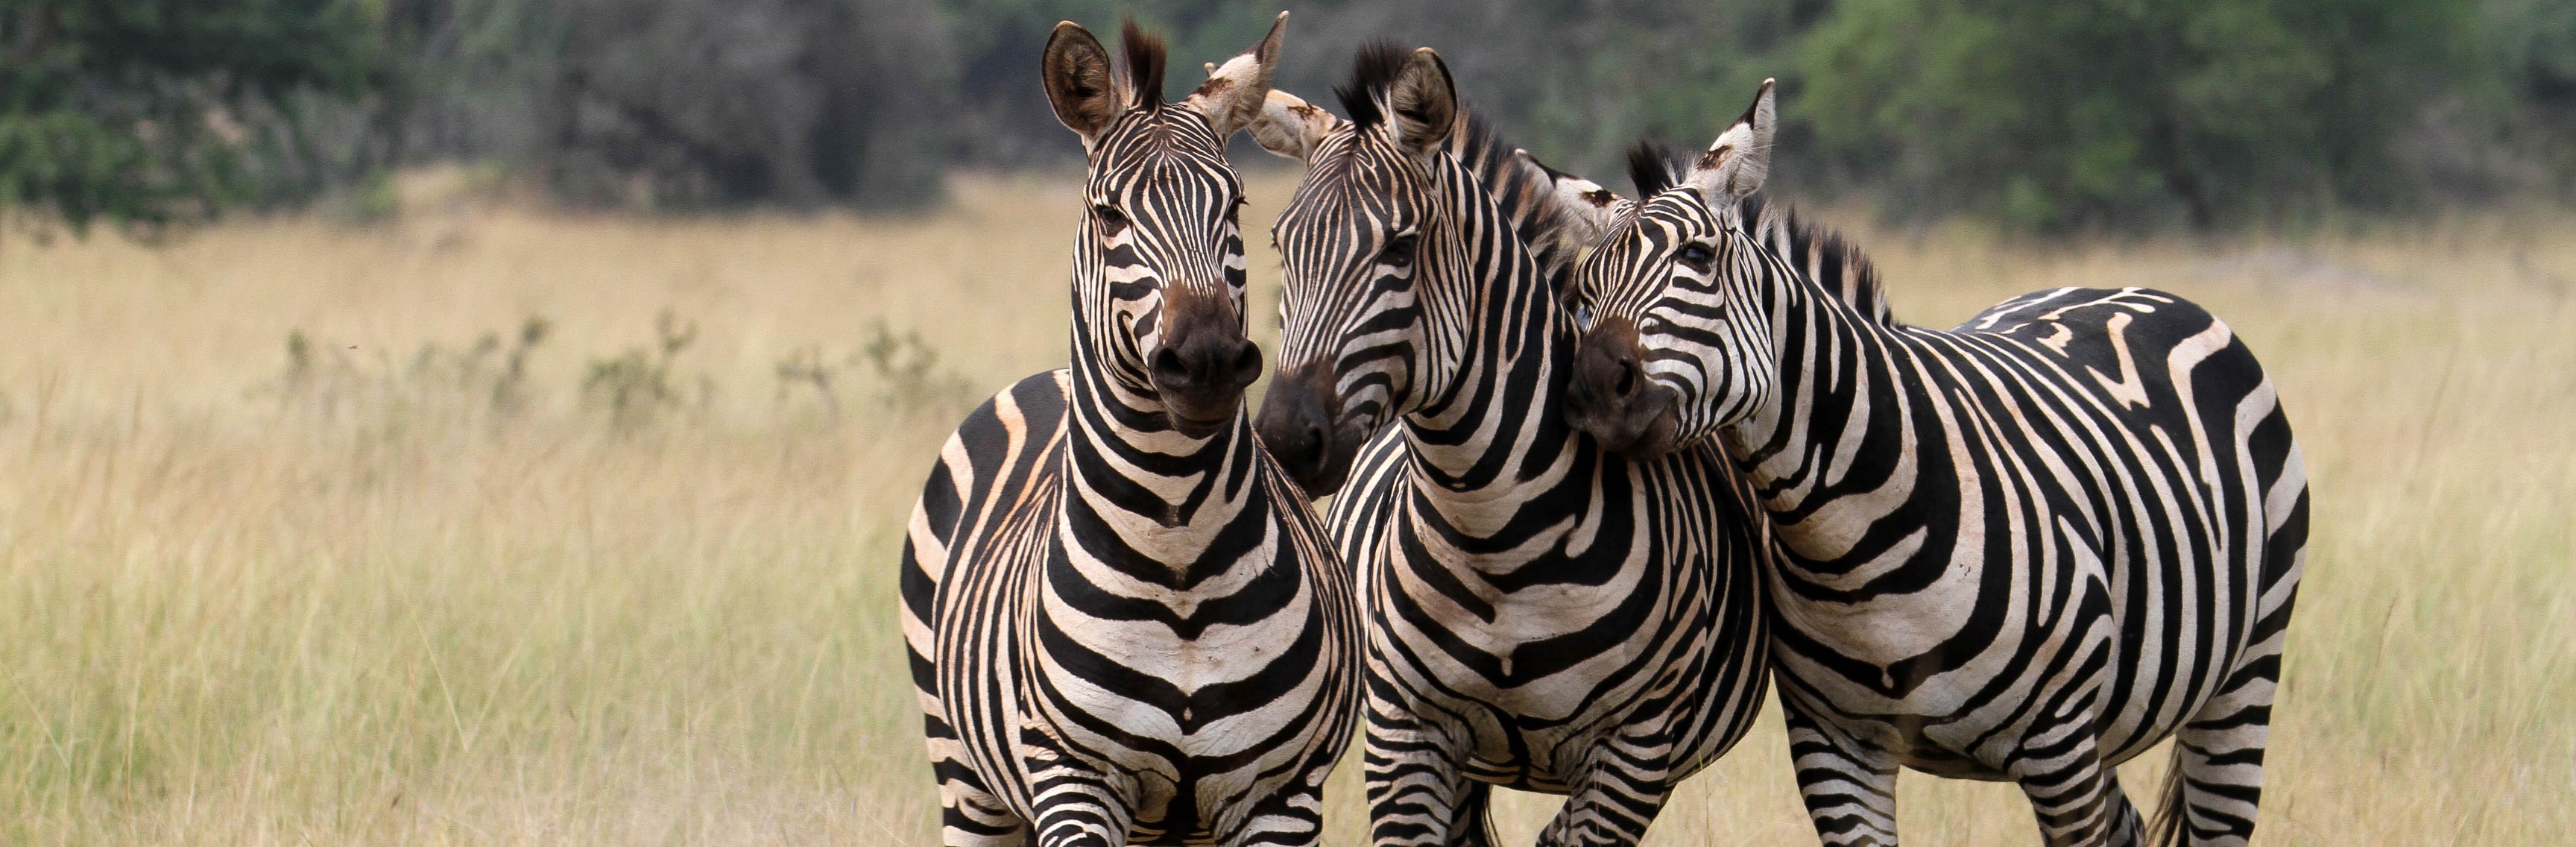 Zebra in Akagera National Park | Sarah Hall of African Parks